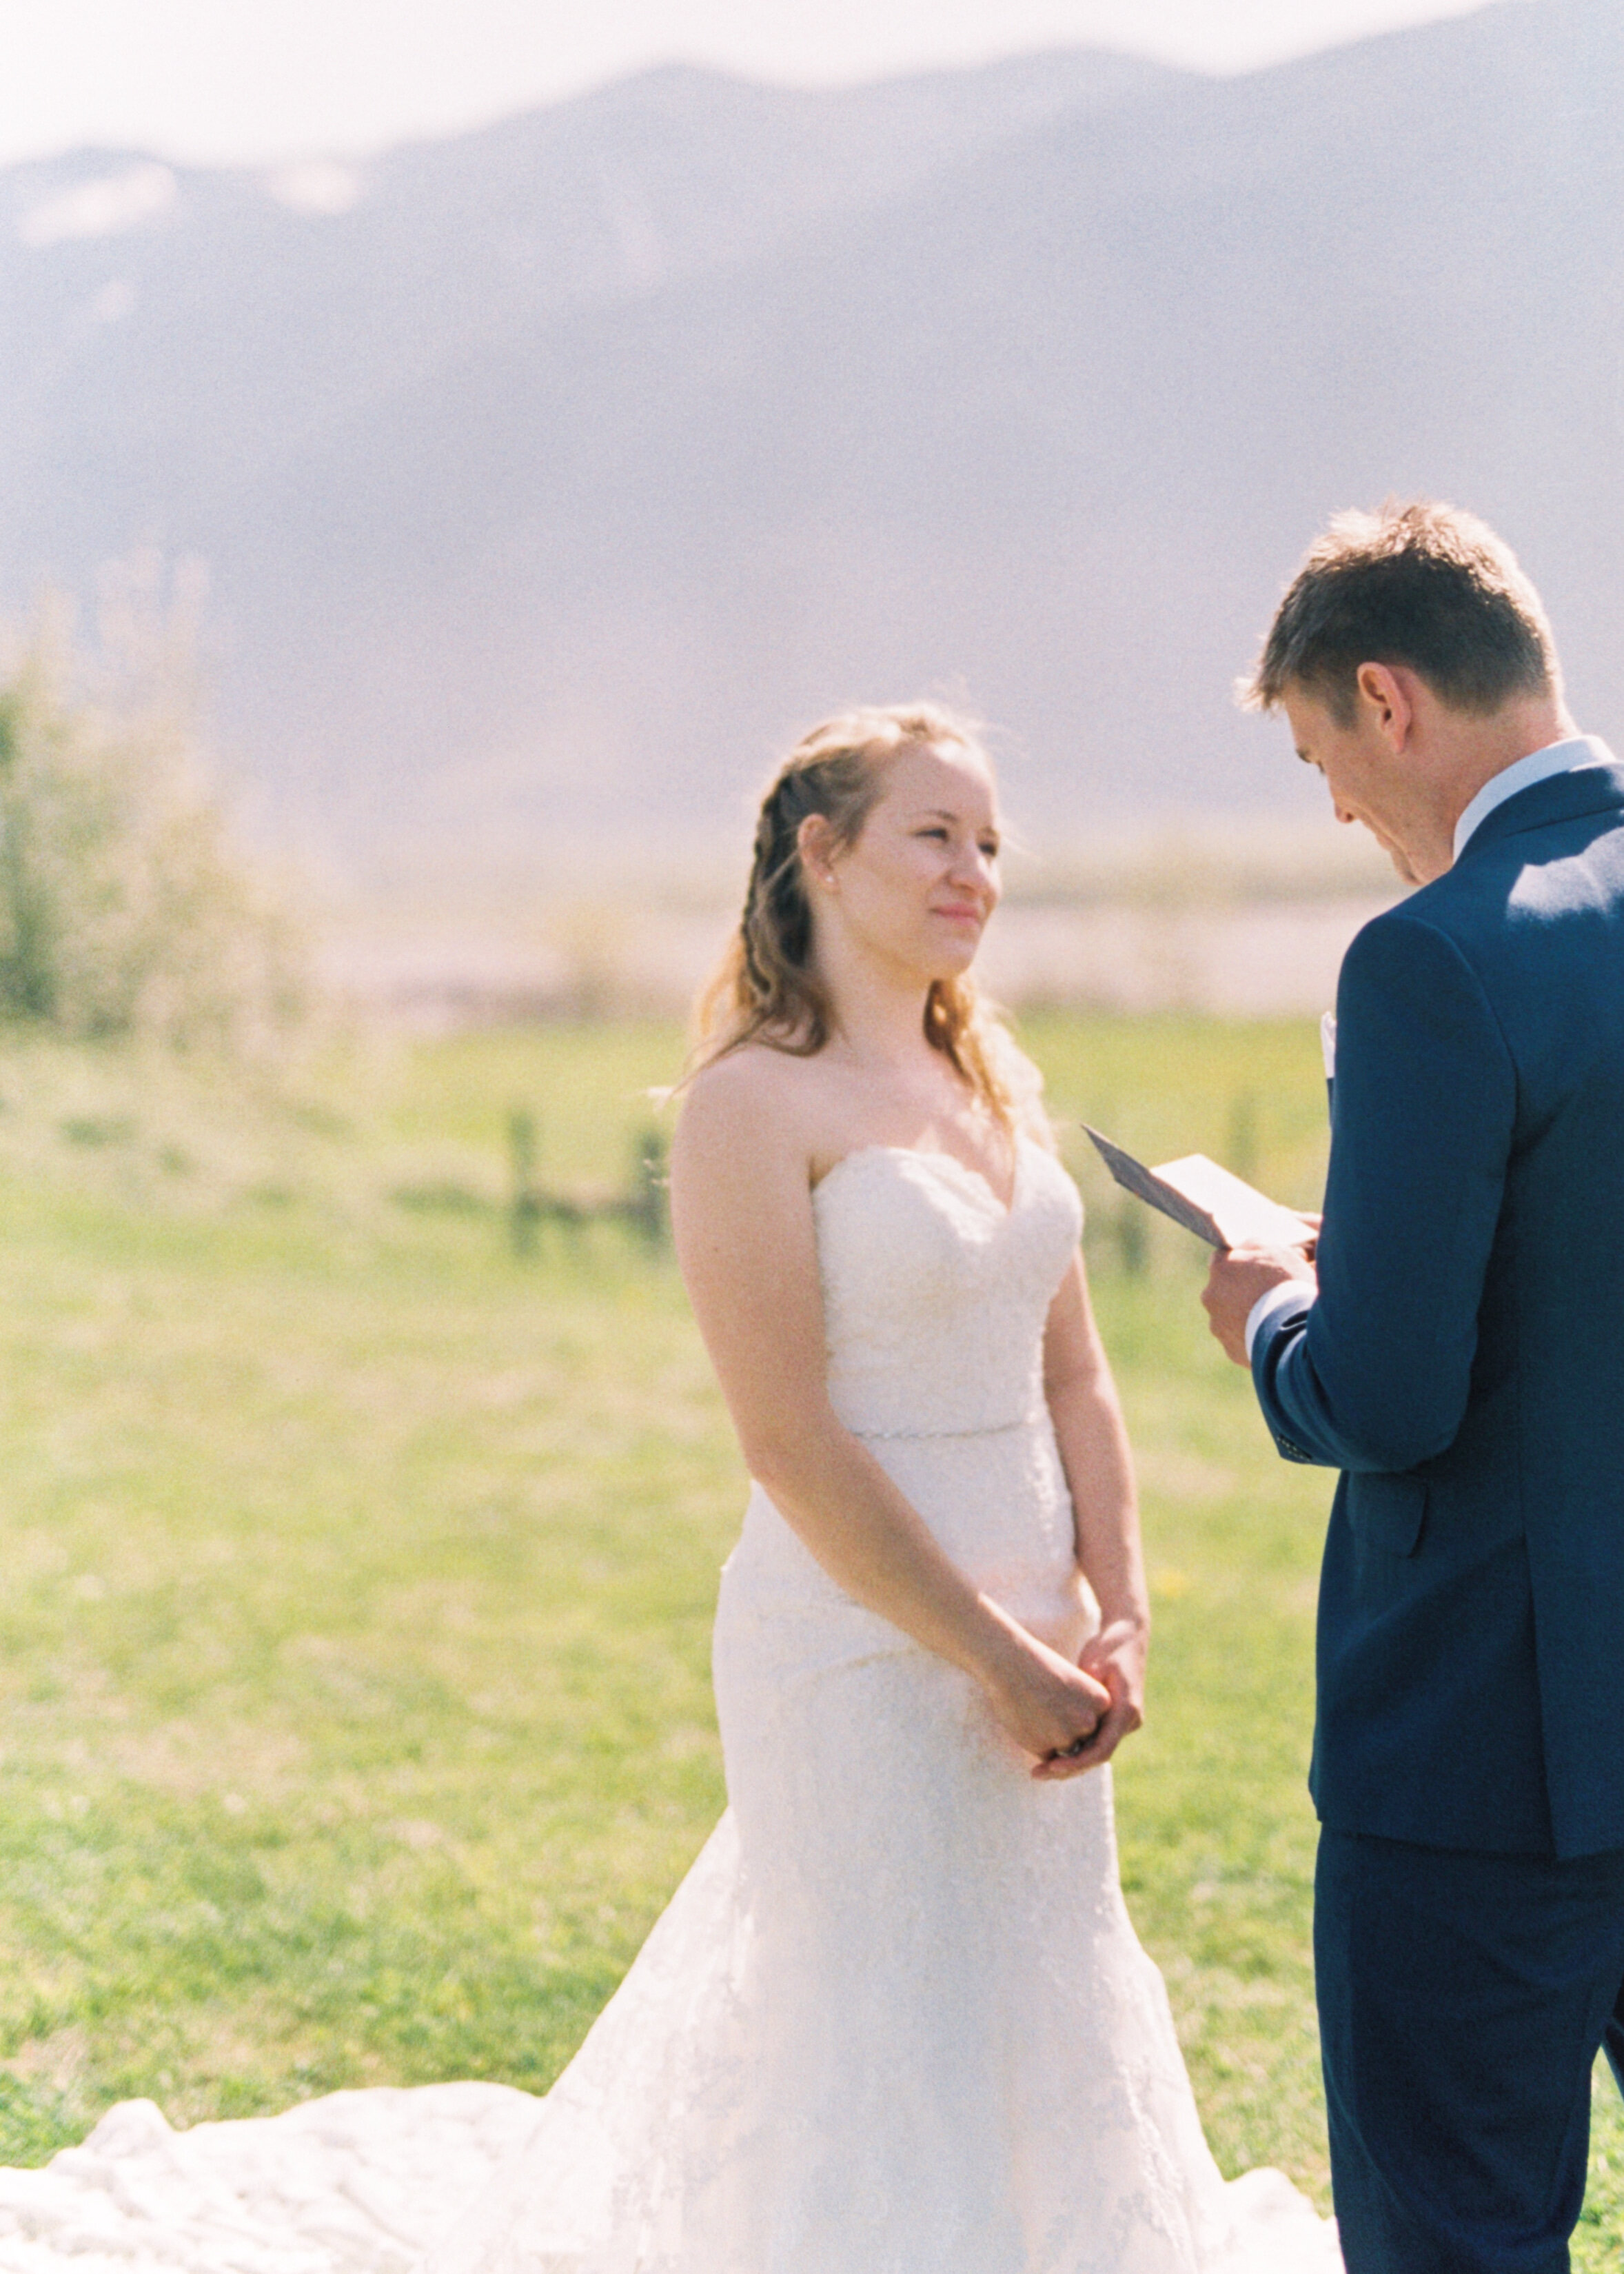 Stunning Elopement Featuring Waterfall Kisses & Helicopter Adventures // Kathryn and Richard - on the Bronte Bride Blog